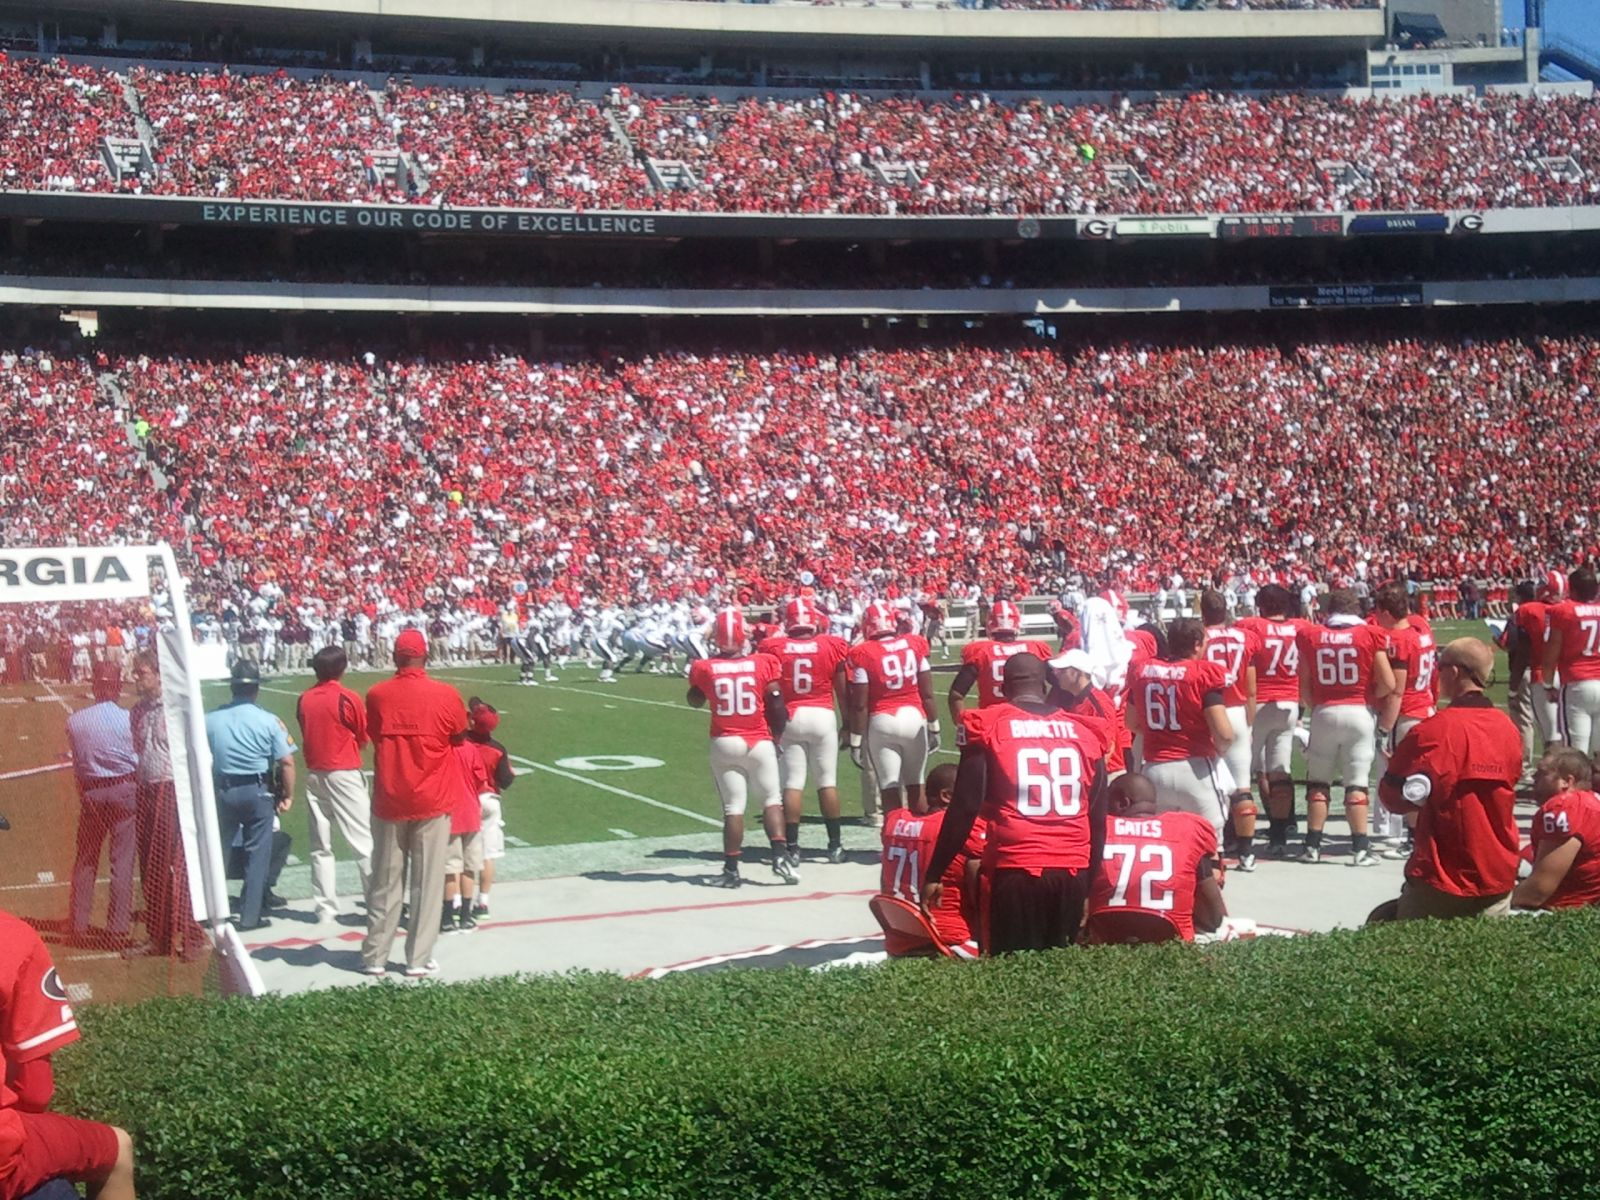 Seat View for Sanford Stadium Section 133, Row 23, Seat 1